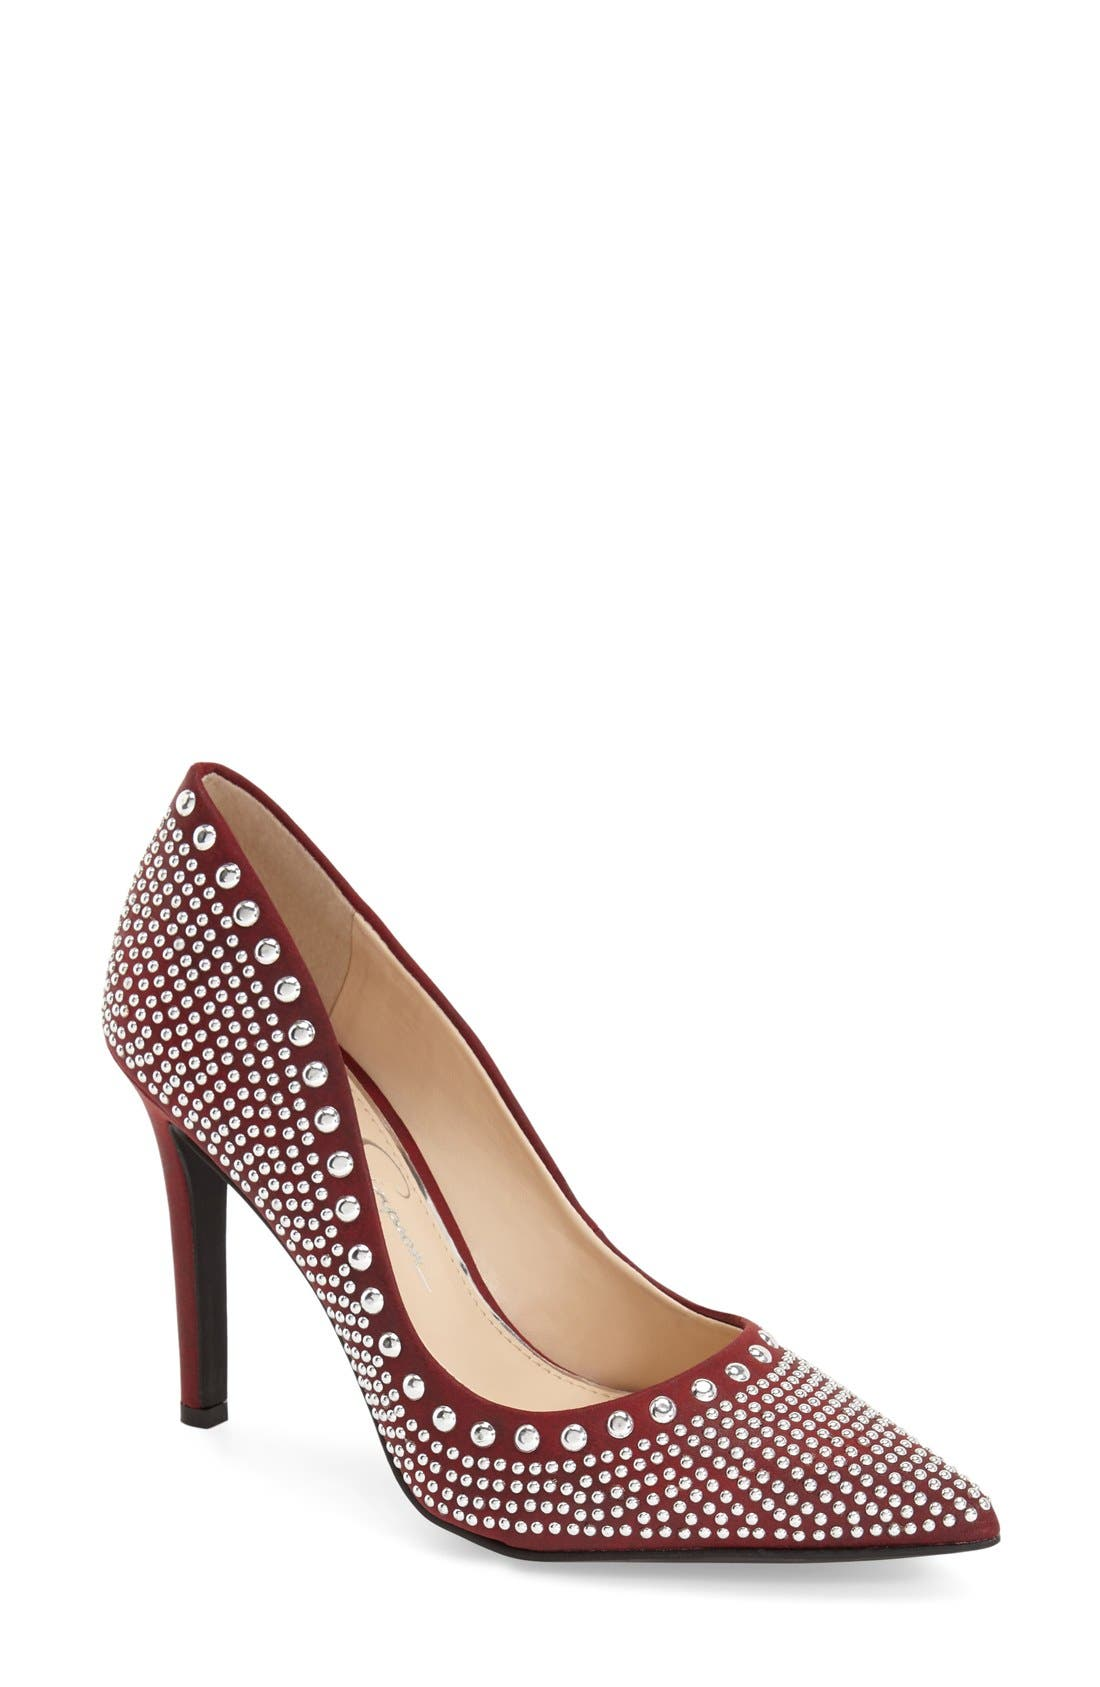 Alternate Image 1 Selected - Jessica Simpson 'Creswell' Stud Pump (Women)